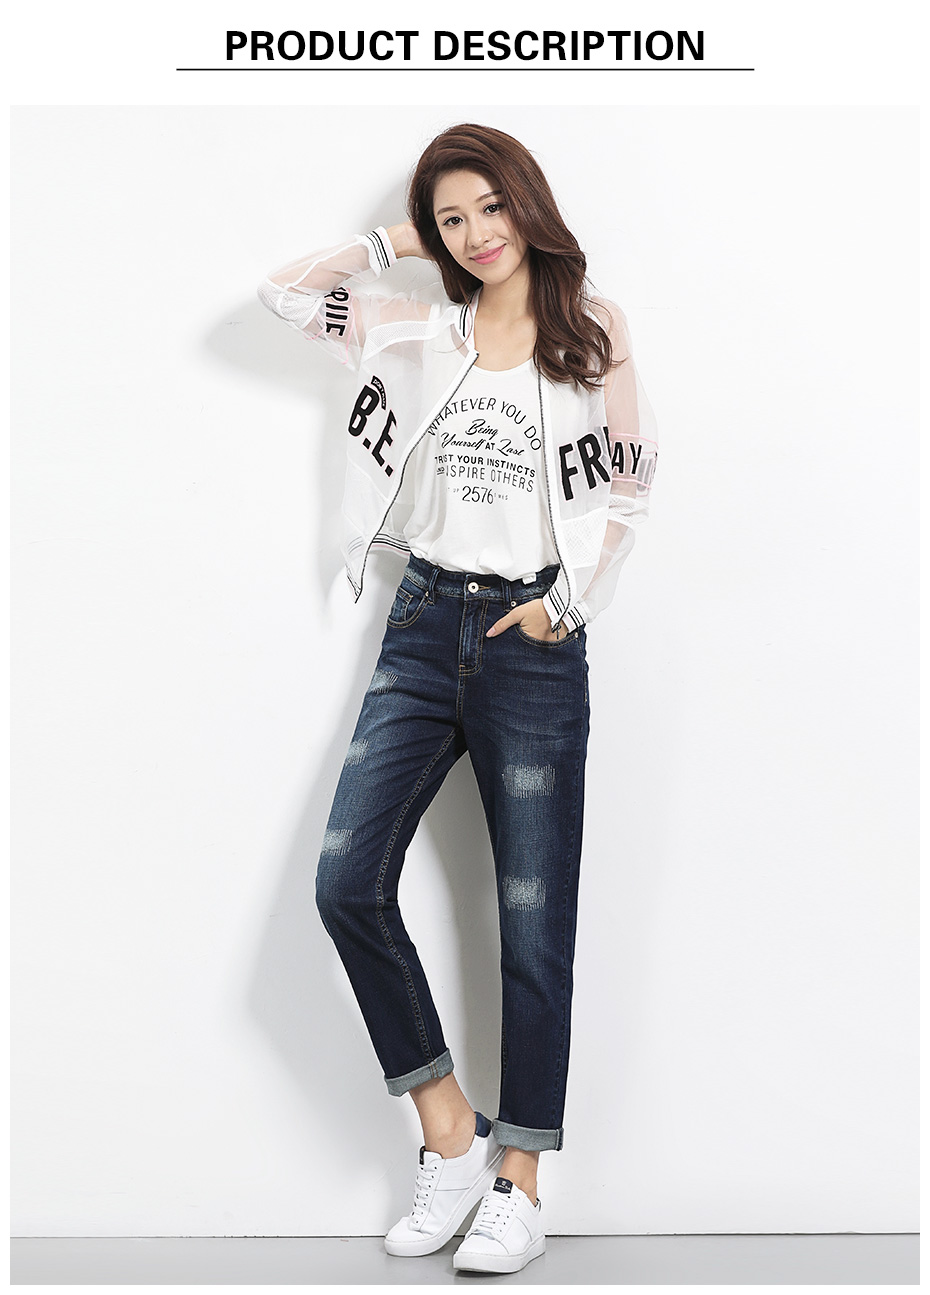 17 New arrival Jeans women Ripped loose style Bleached mid waist low elastic Plus size jeans 40-1KG Available 5